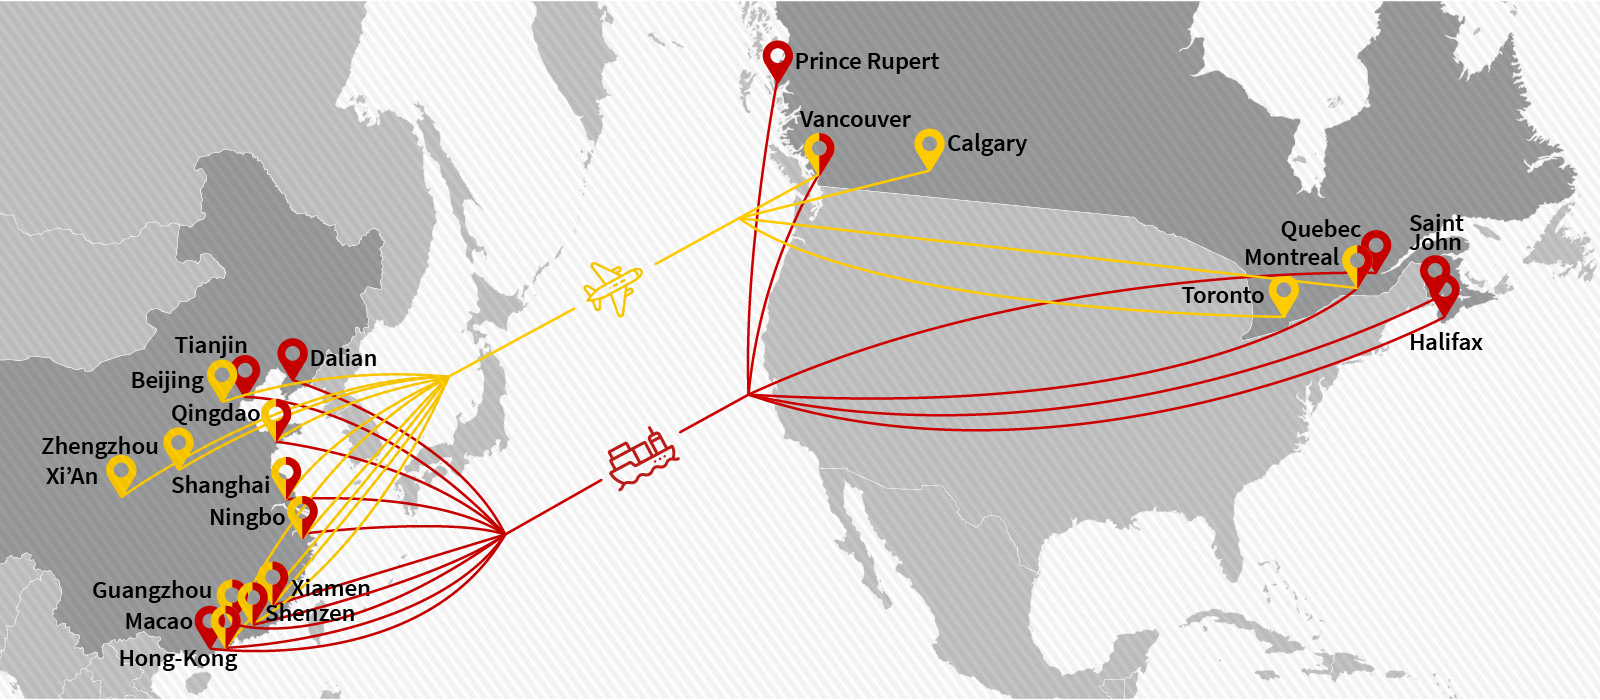 Cargo & freight shipping from China to Canada by Air Charter or Ocean Container - Main POL, POD & Routes